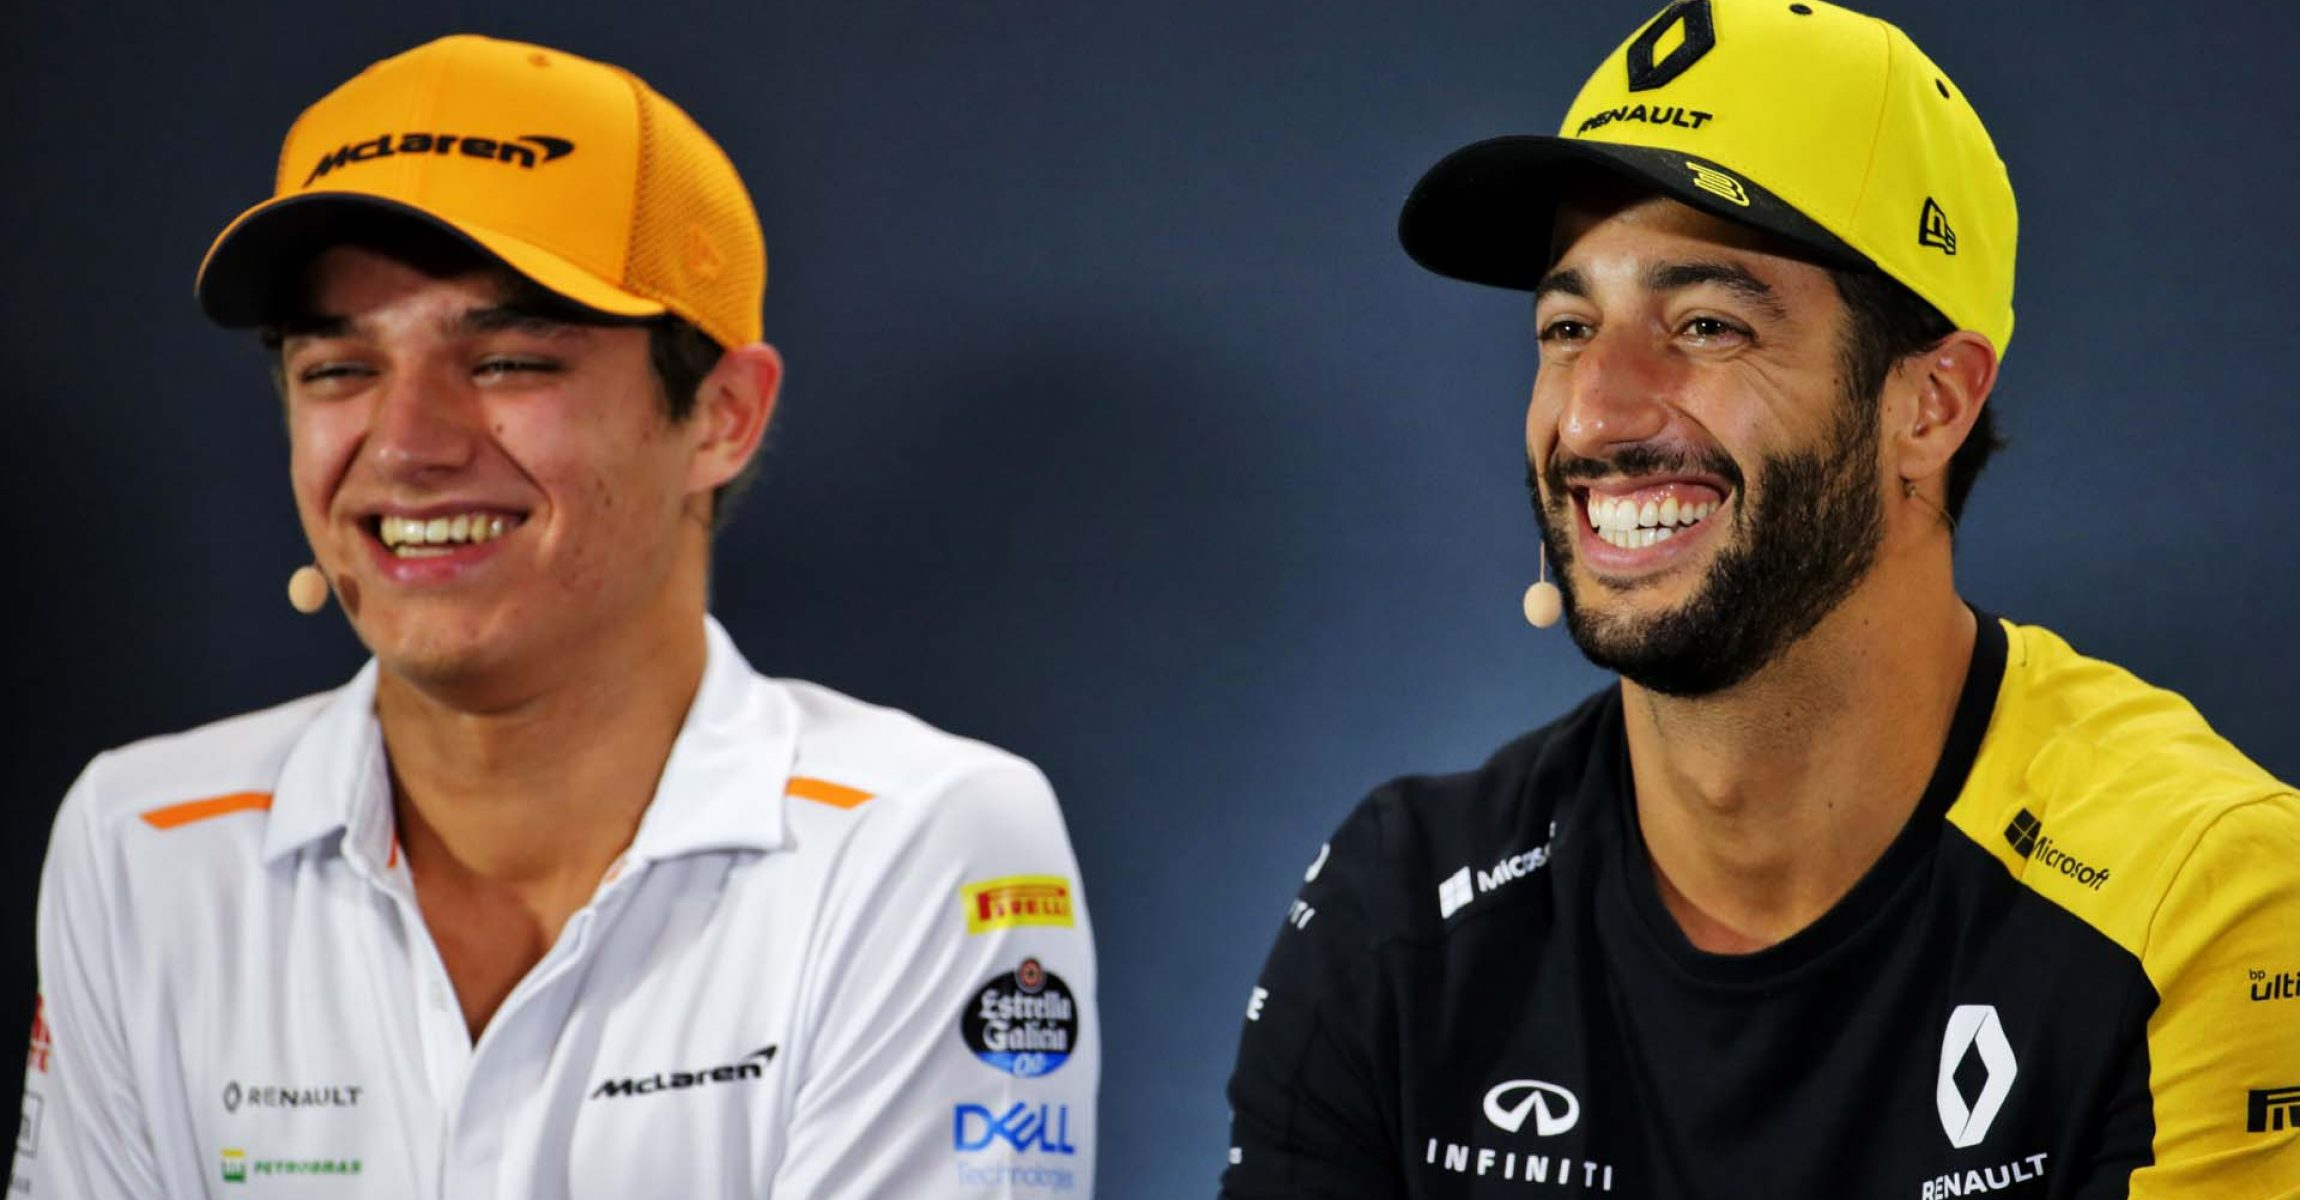 (L to R): Lando Norris (GBR) McLaren and Daniel Ricciardo (AUS) Renault F1 Team in the FIA Press Conference. Singapore Grand Prix, Thursday 19th September 2019. Marina Bay Street Circuit, Singapore.